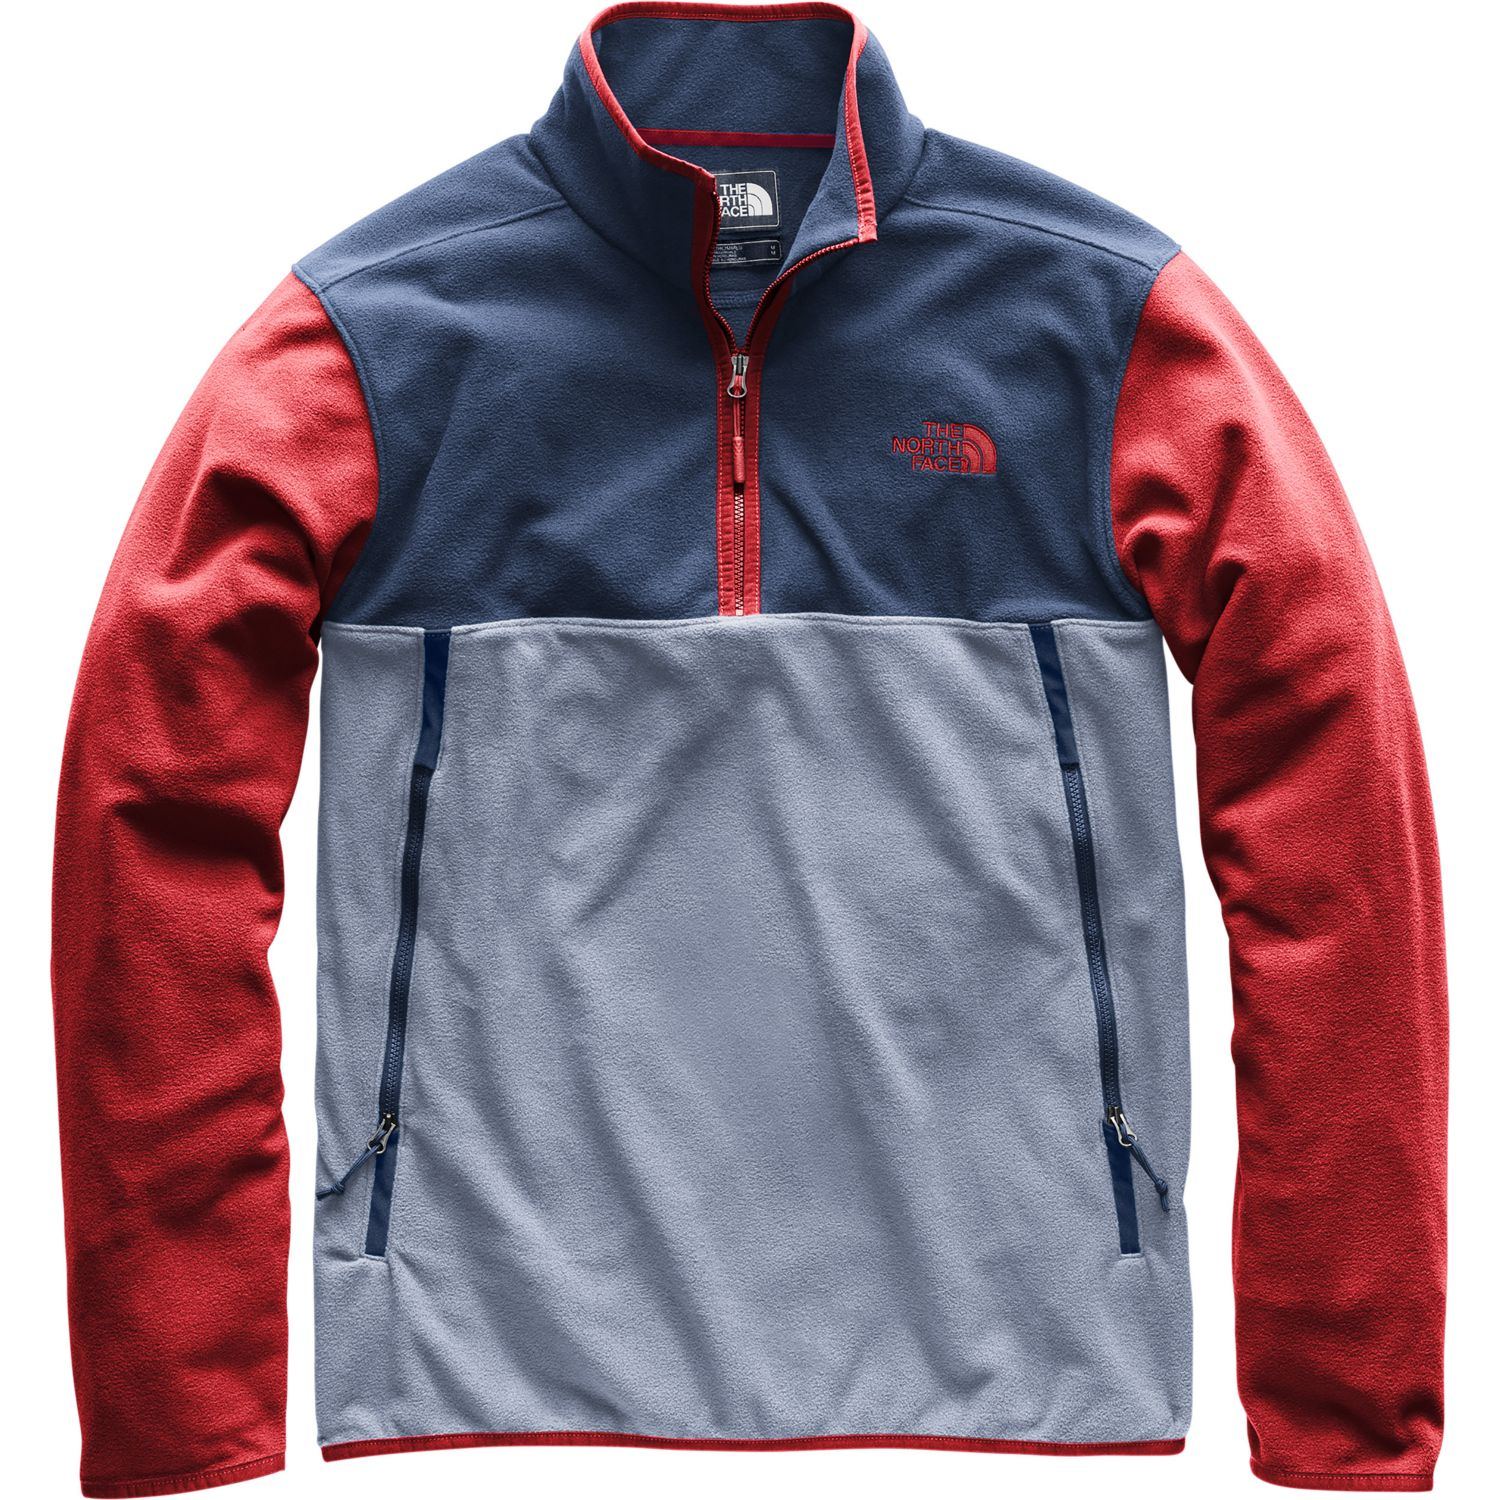 b1a449243 The North Face Glacier Alpine 1/4 Zip - Men's